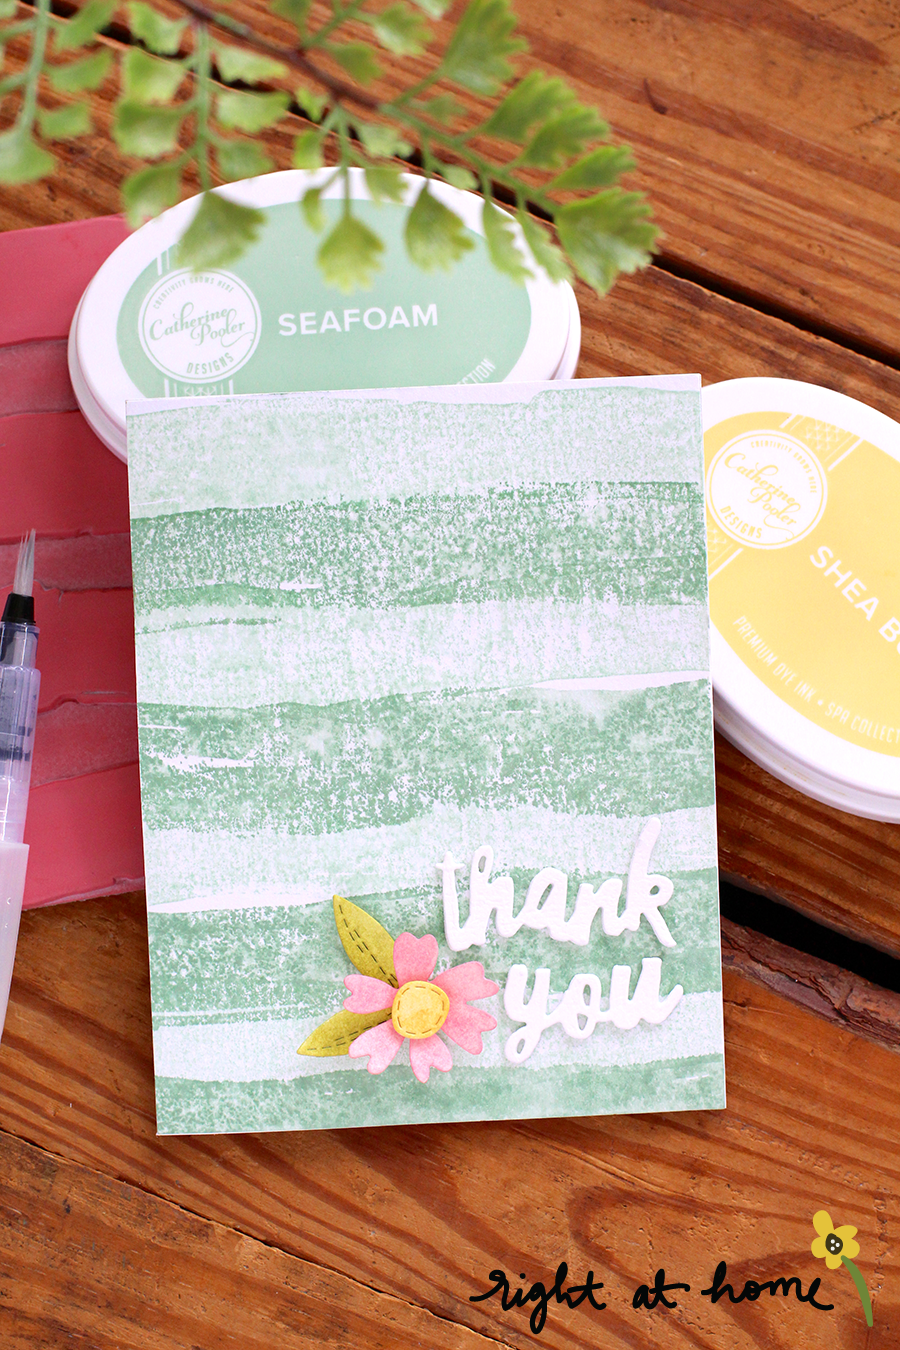 Thank You Watercolor Background Stamp Card // National Craft Month with Right at Home + My Sweet Petunia - rightathomeshop.com/blog